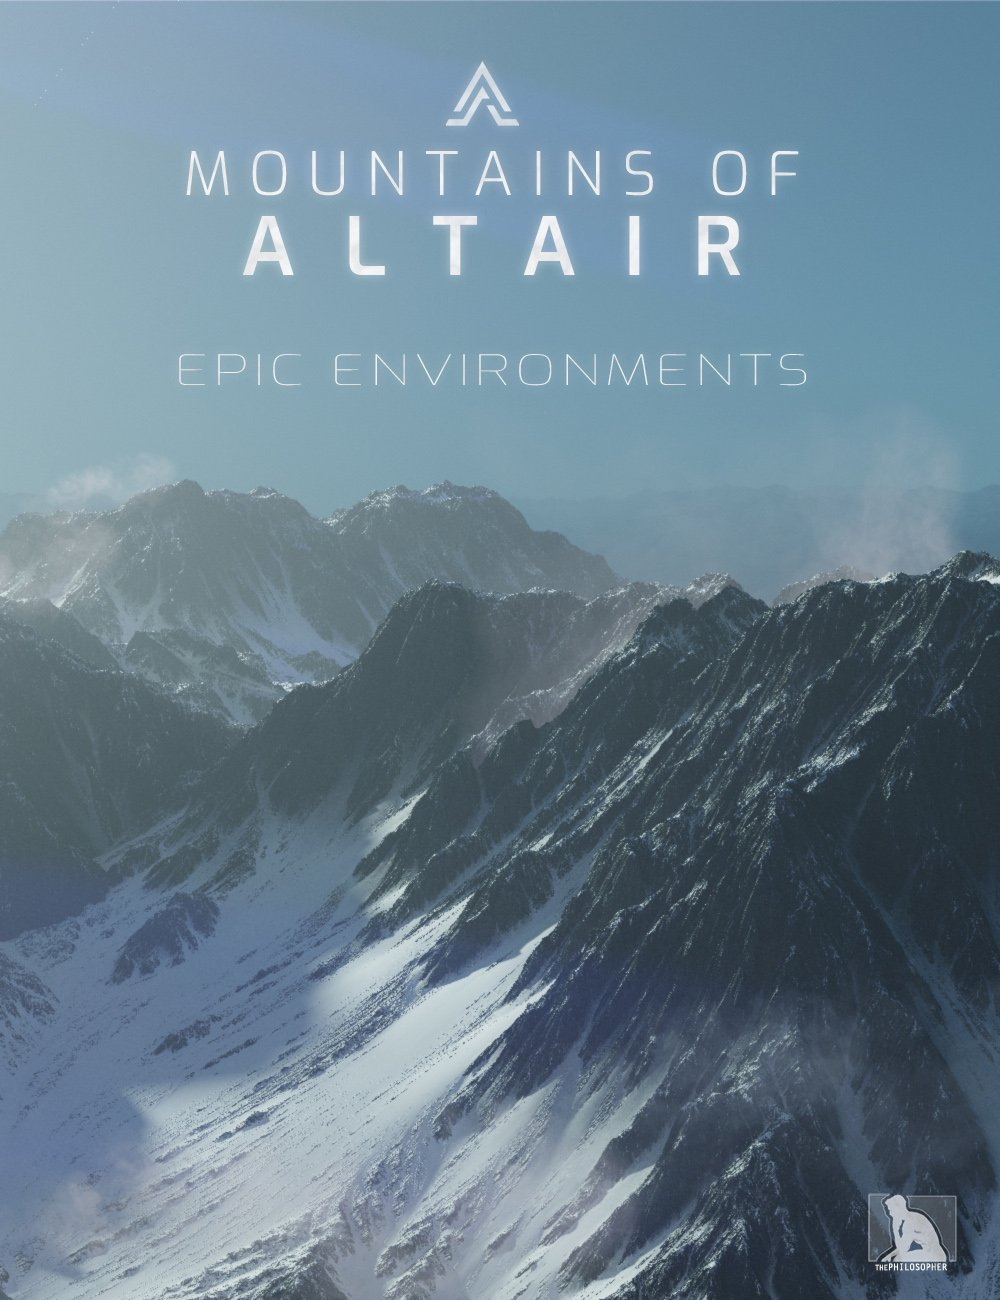 Epic Environments - Mountains of Altair by: ThePhilosopher, 3D Models by Daz 3D